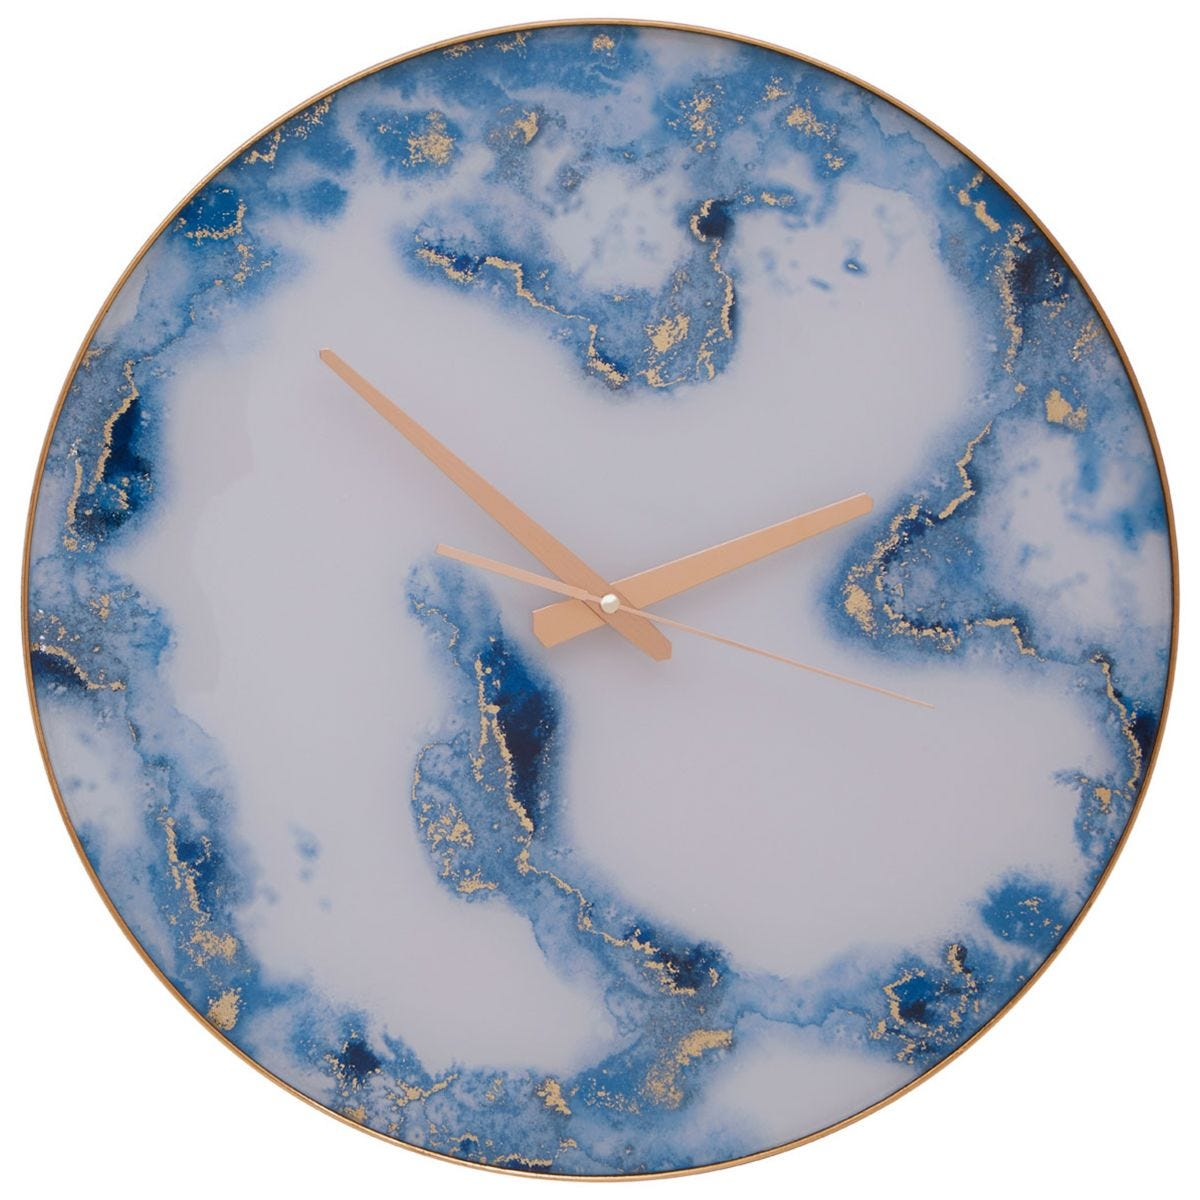 Fifty Five South Primrose 45cm Wall Clock - Blue Abstract